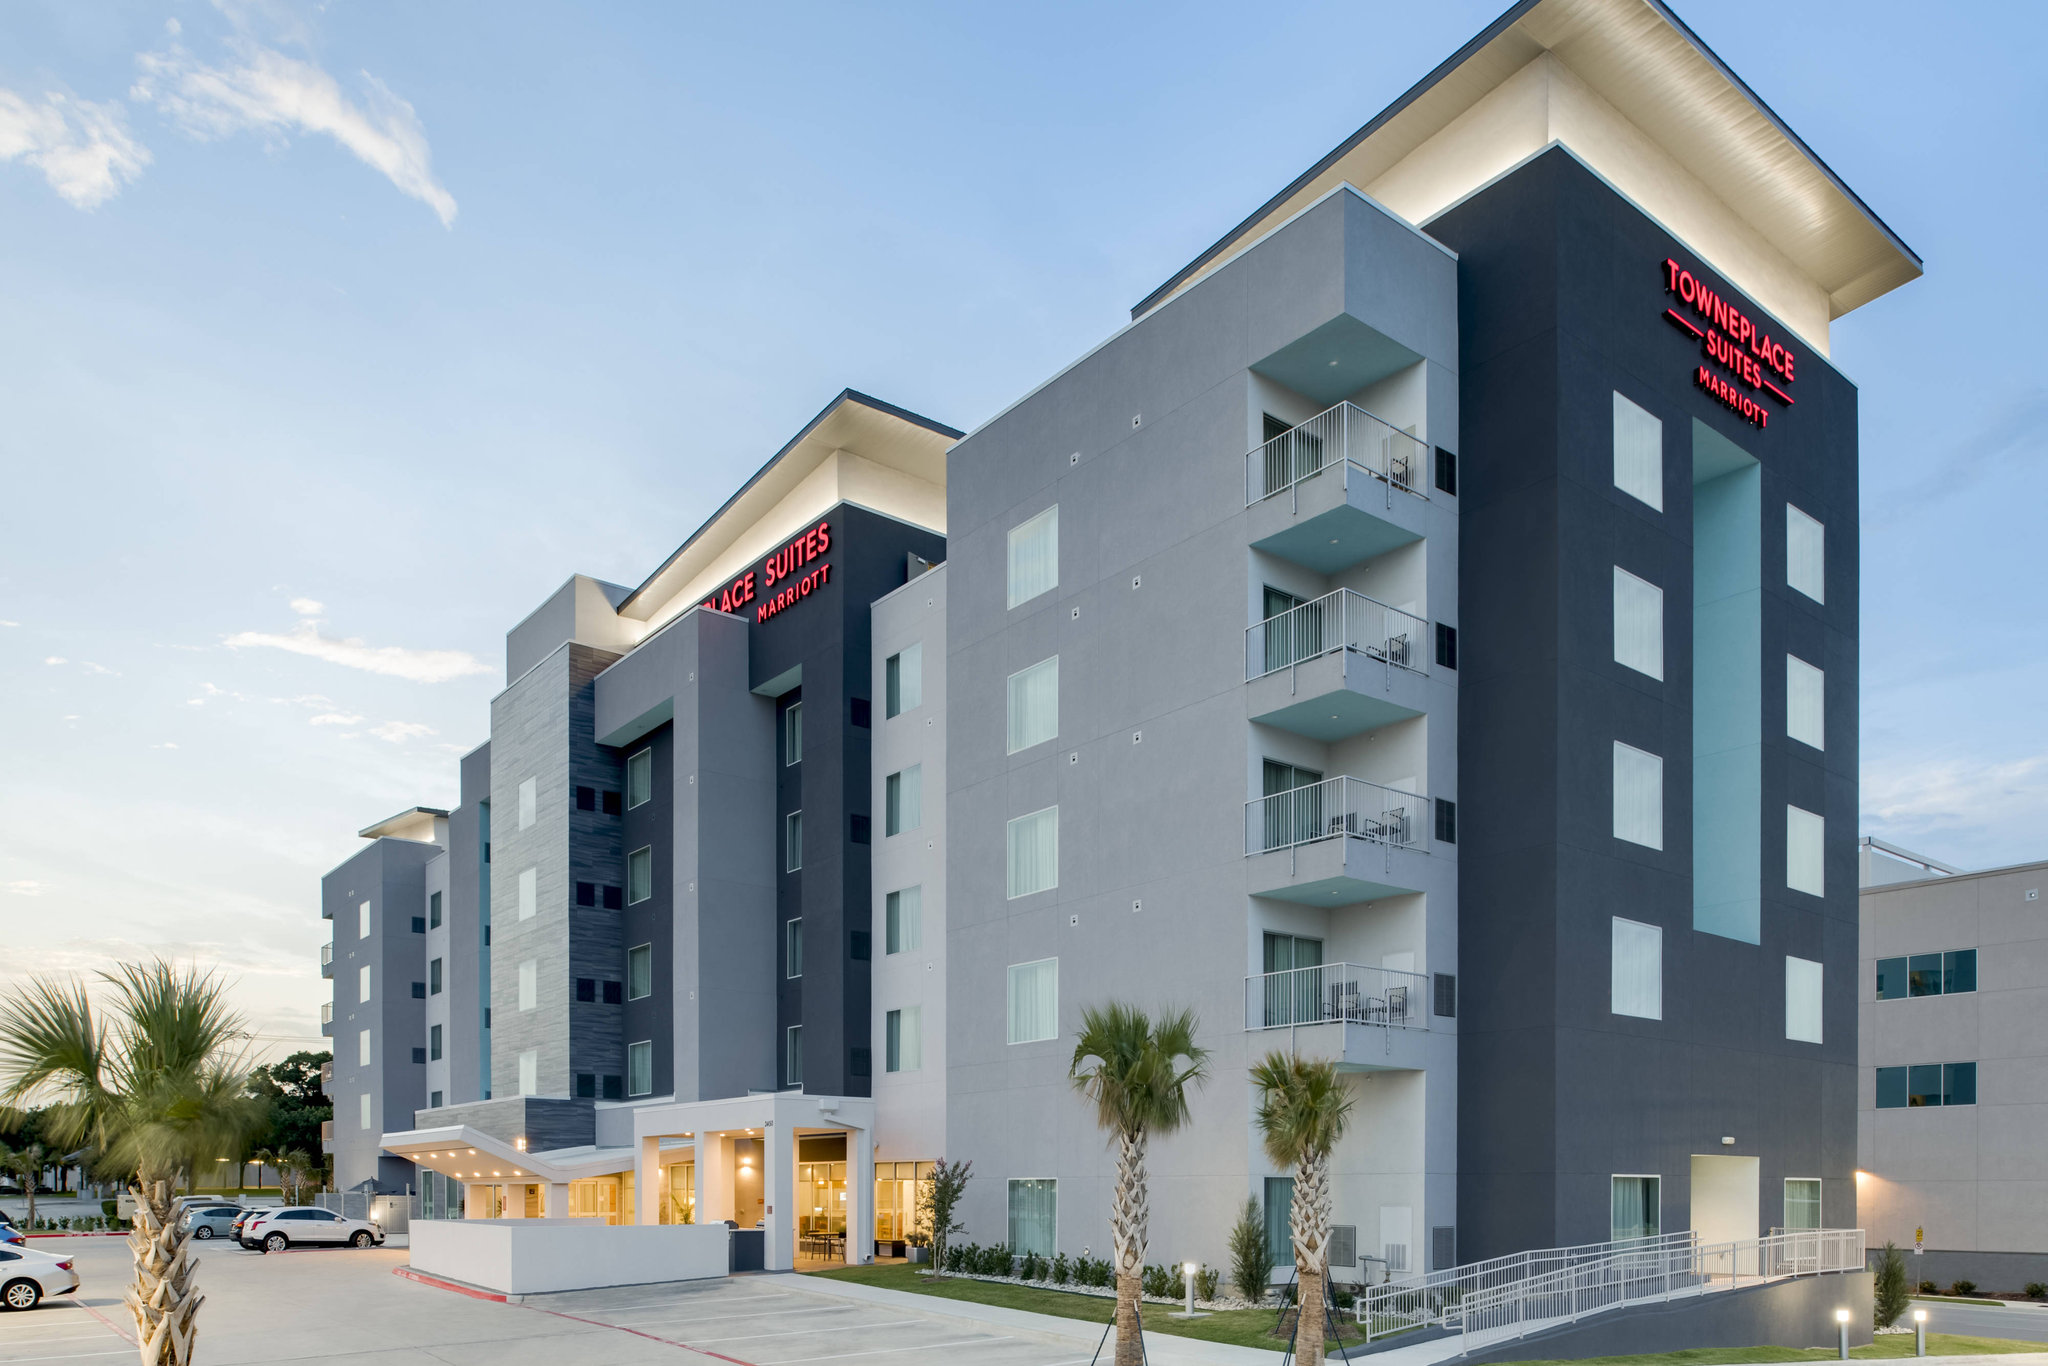 TownePlace Suites Fort Worth University